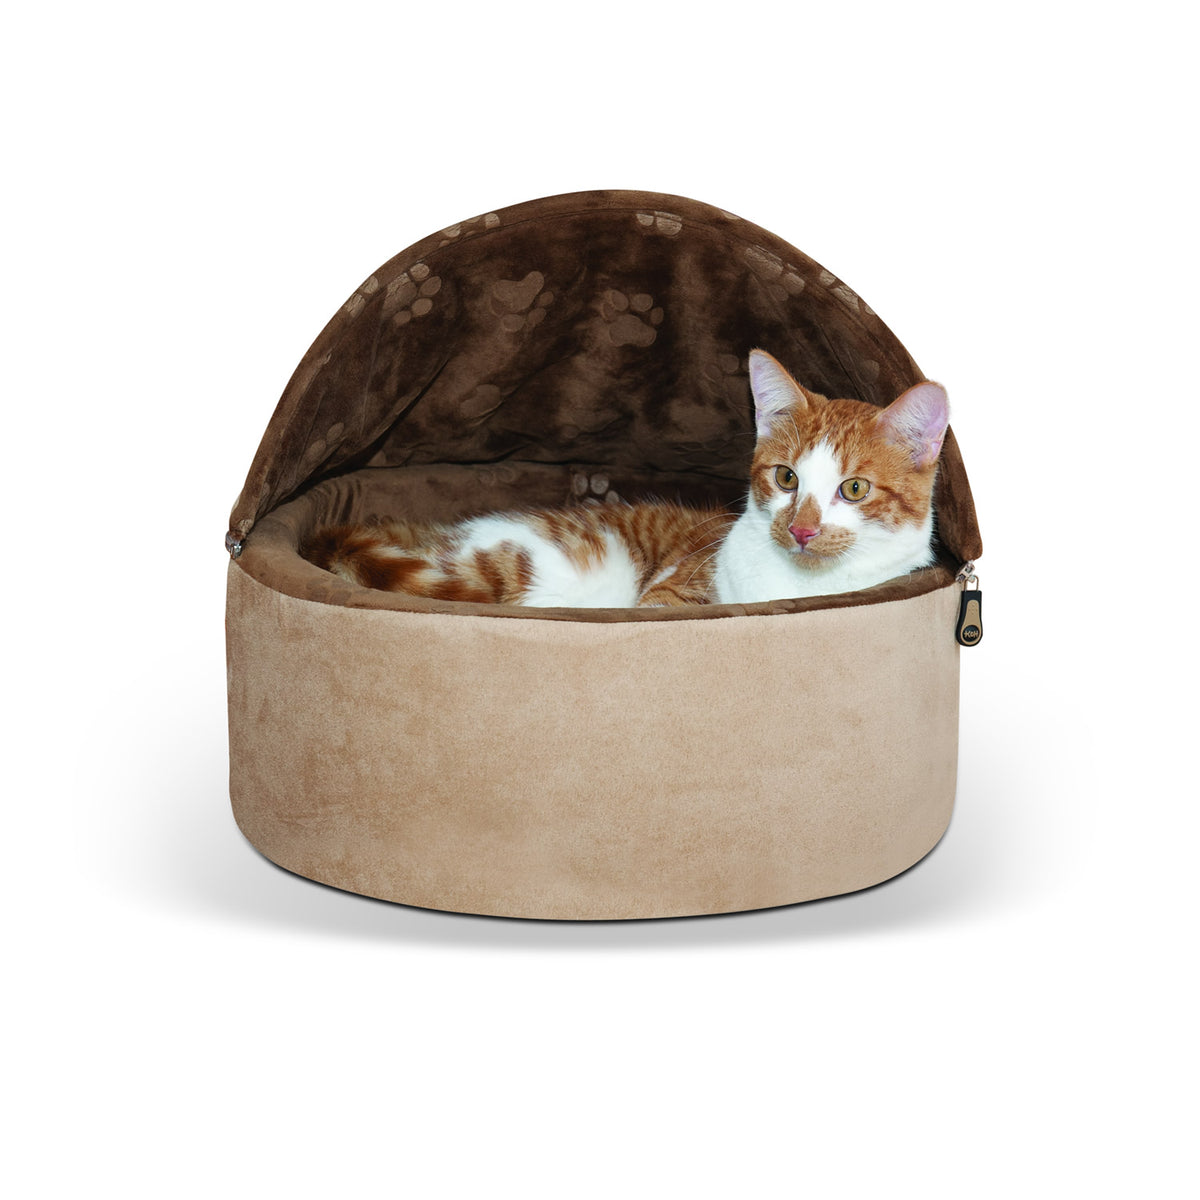 K H Self Warming Kitty Bed Hooded Cat Dog Self Warming Pet Bed K H Pet Products